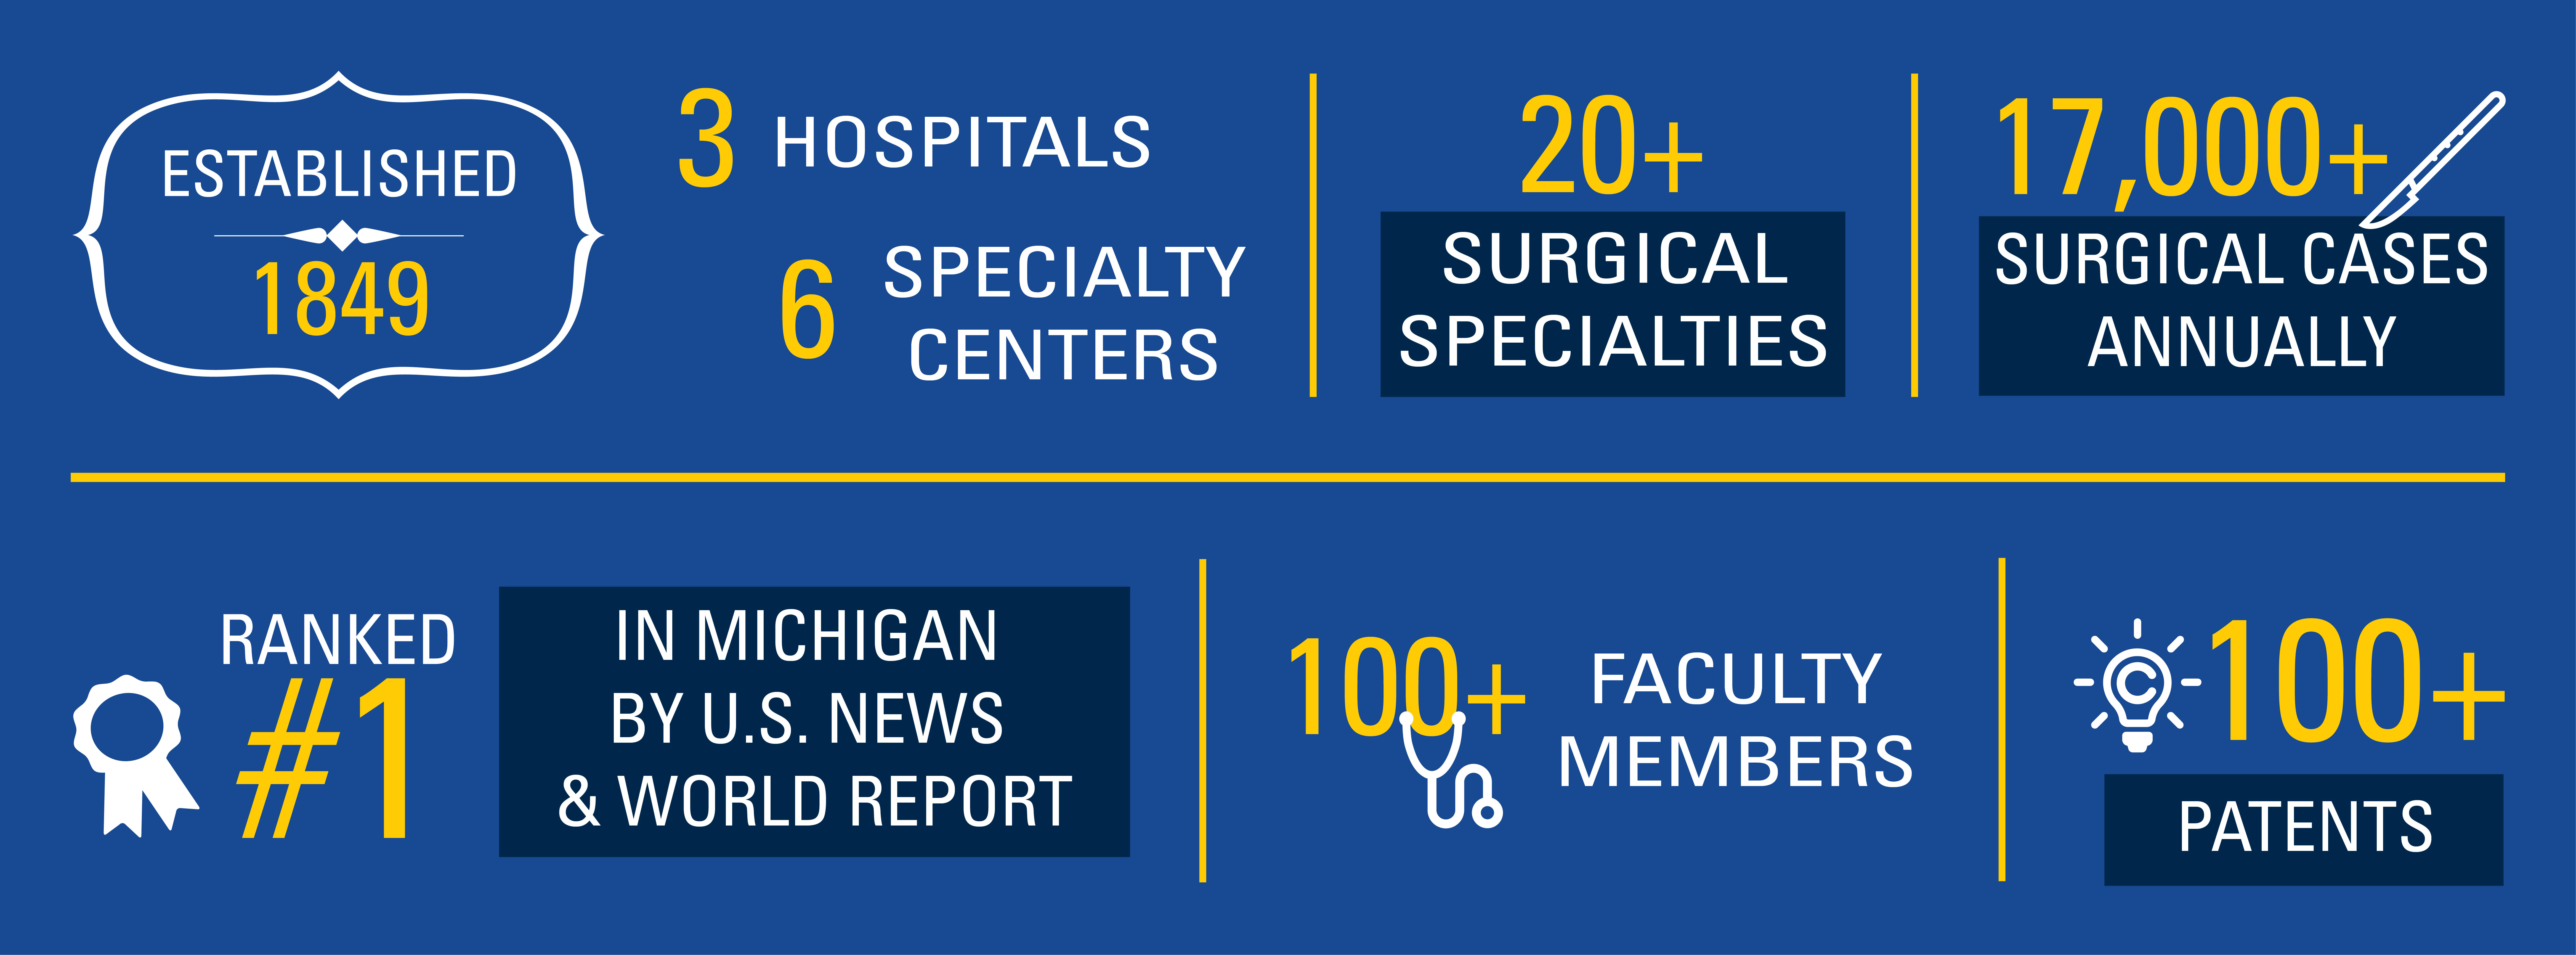 Established in 1849; 100+ faculty members; 20+ surgical specialties; 17000+ surgical cases annually; Ranked #1 in Michigan by U.S. News & World Report; 3 hospitals, 6 specialty centers; 100+ patents